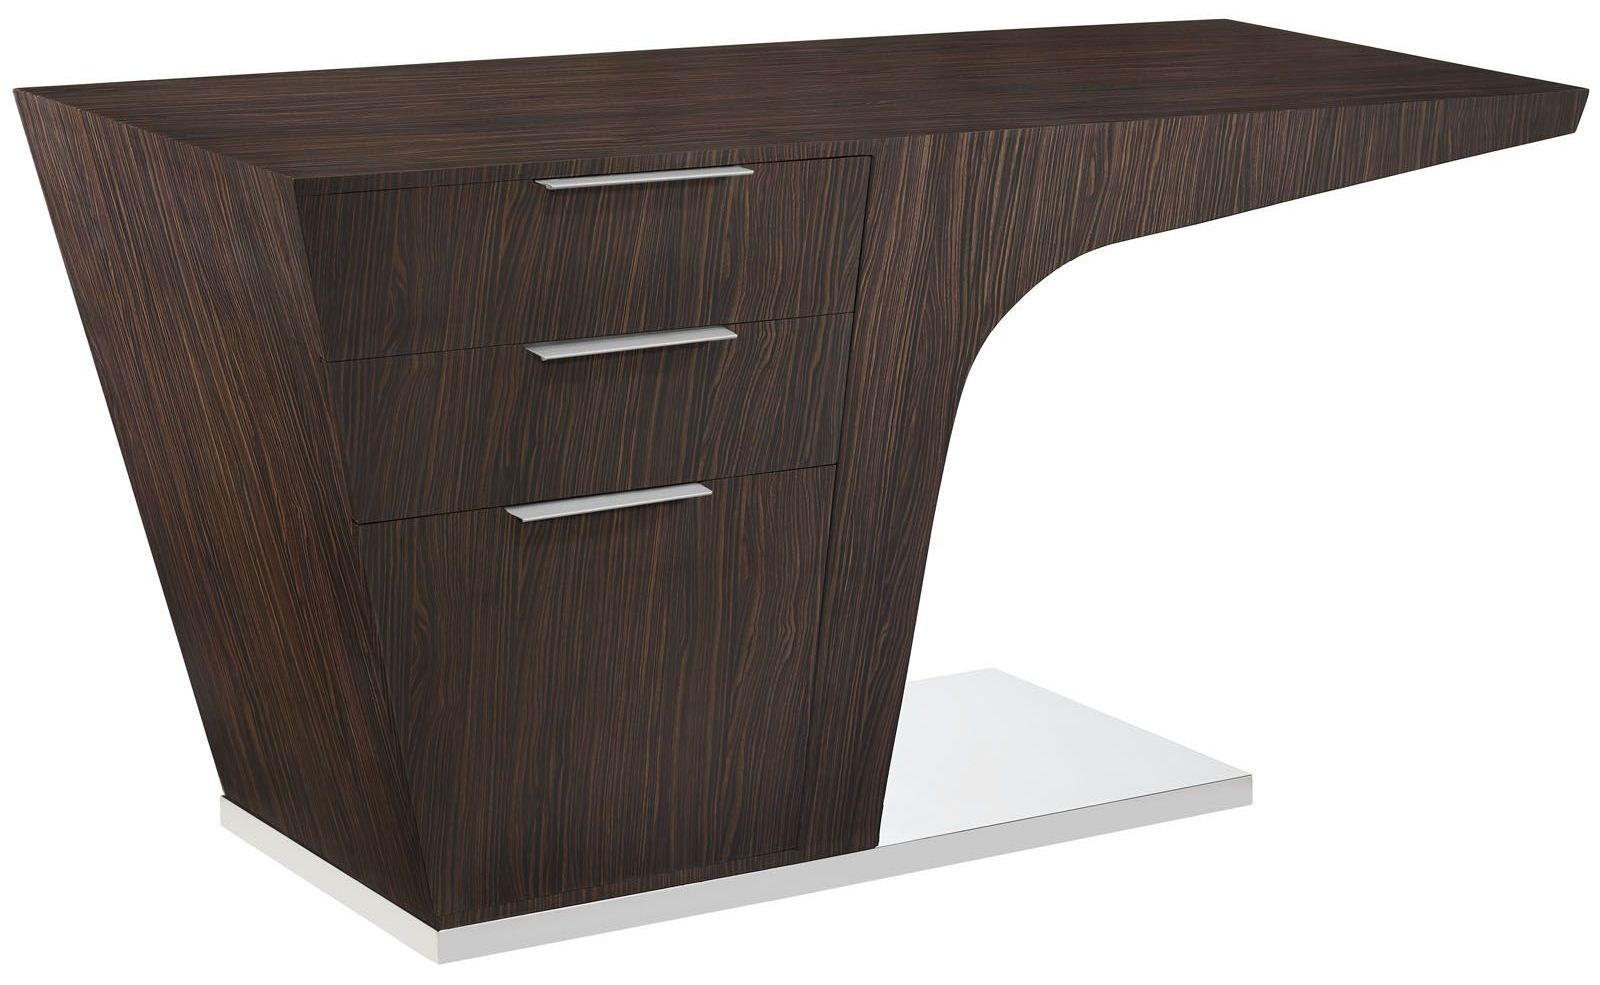 Warp walnut office desk from renegade eei 1188 coleman - Walnut office desk ...